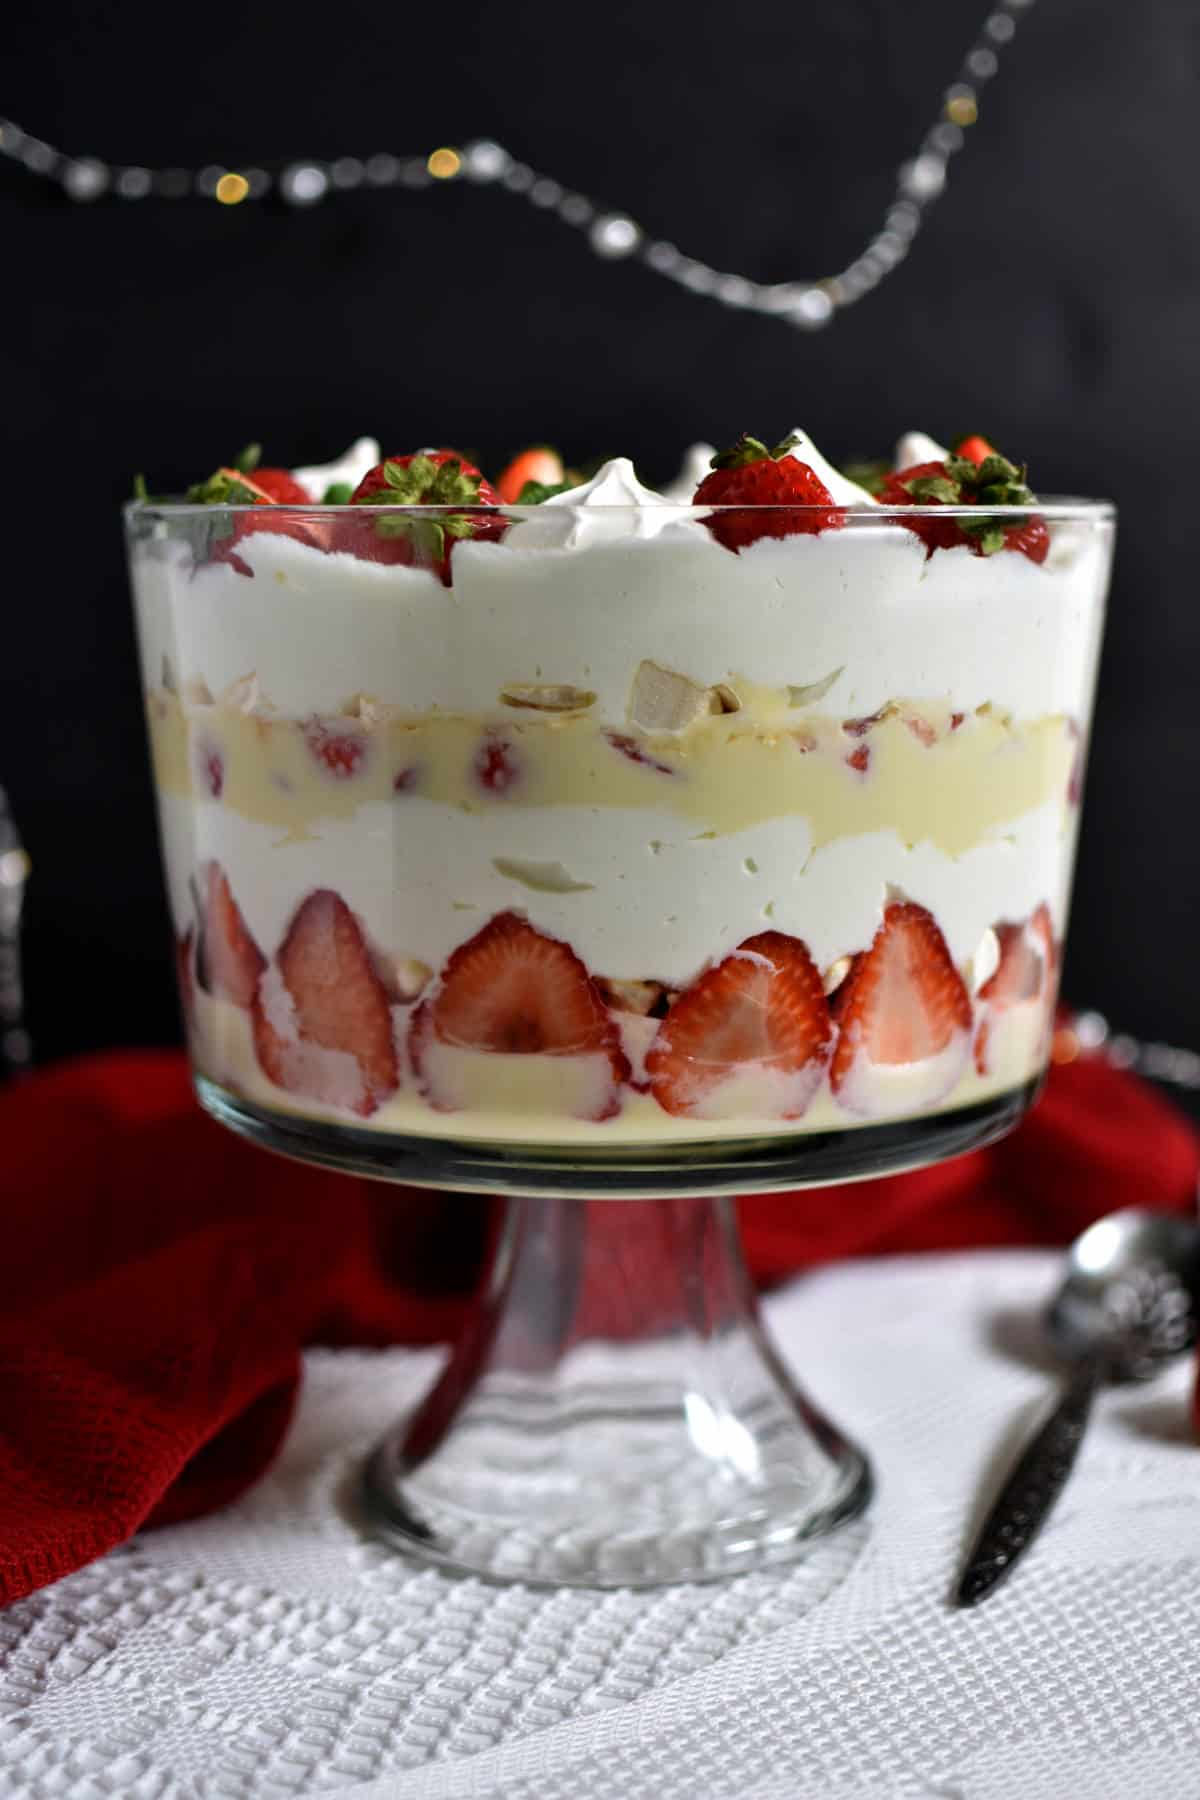 Layers of a strawberry trifle in a trifle bowl